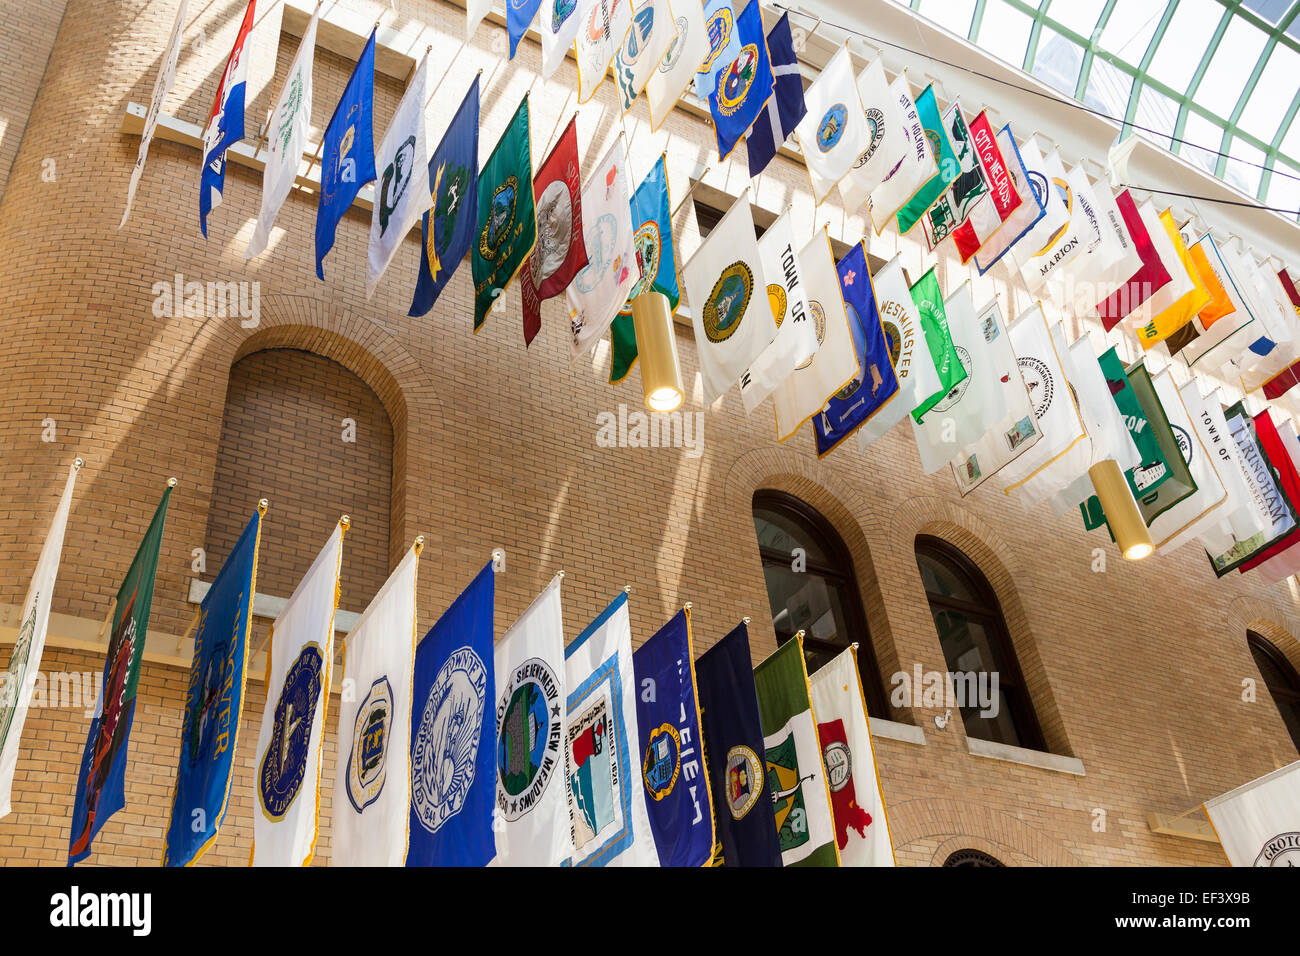 Town And City Flags In The Great Hall Of Flags M Achusetts State House Boston M Achusetts Usa